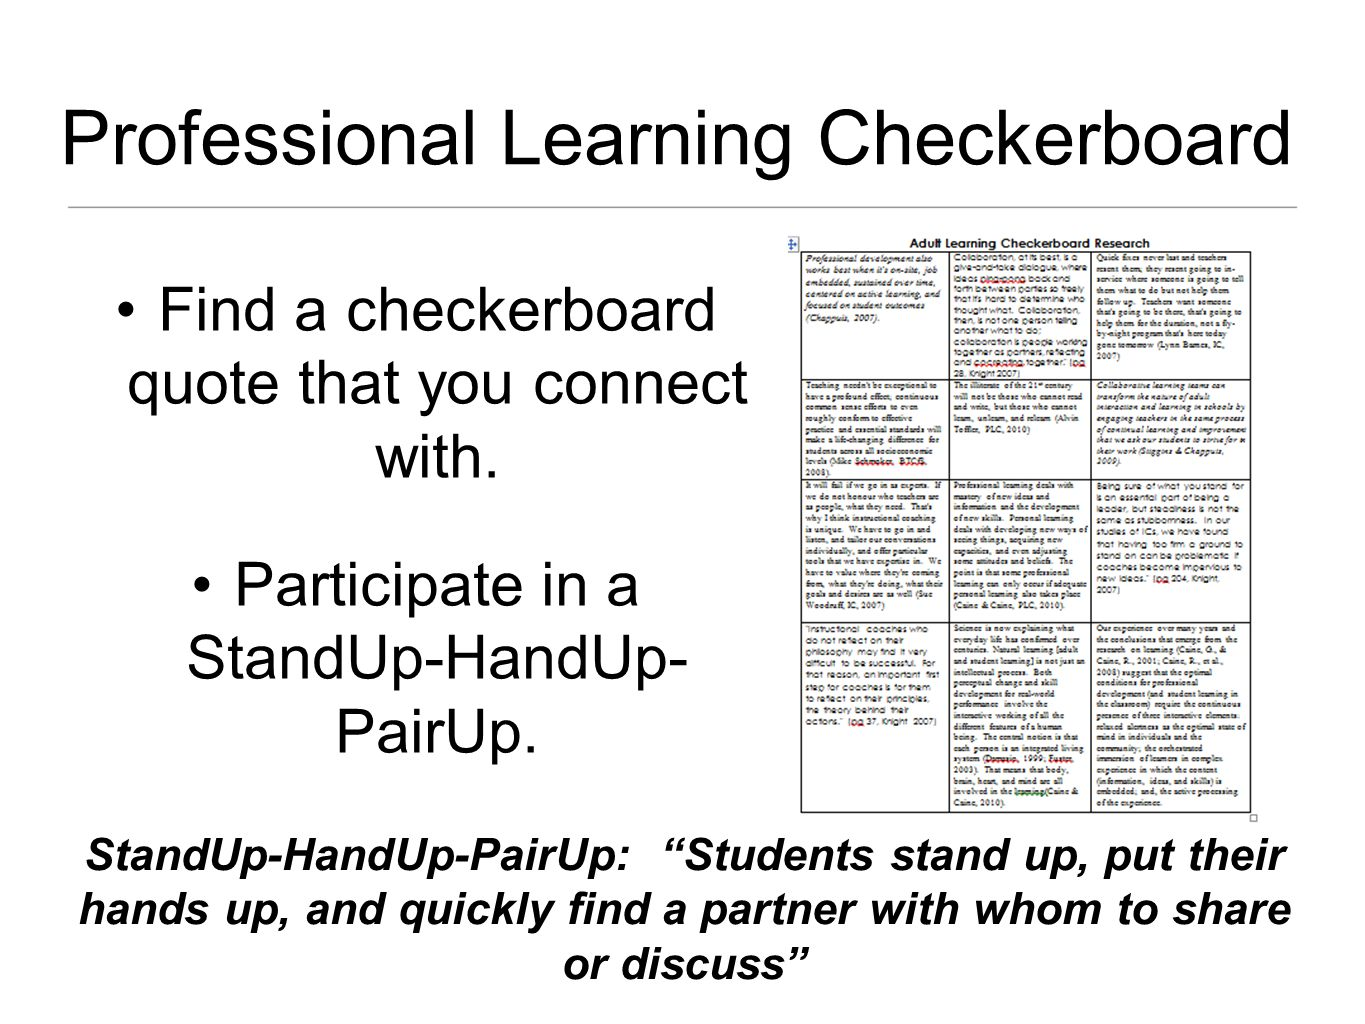 Find a checkerboard quote that you connect with. Participate in a StandUp-HandUp- PairUp.